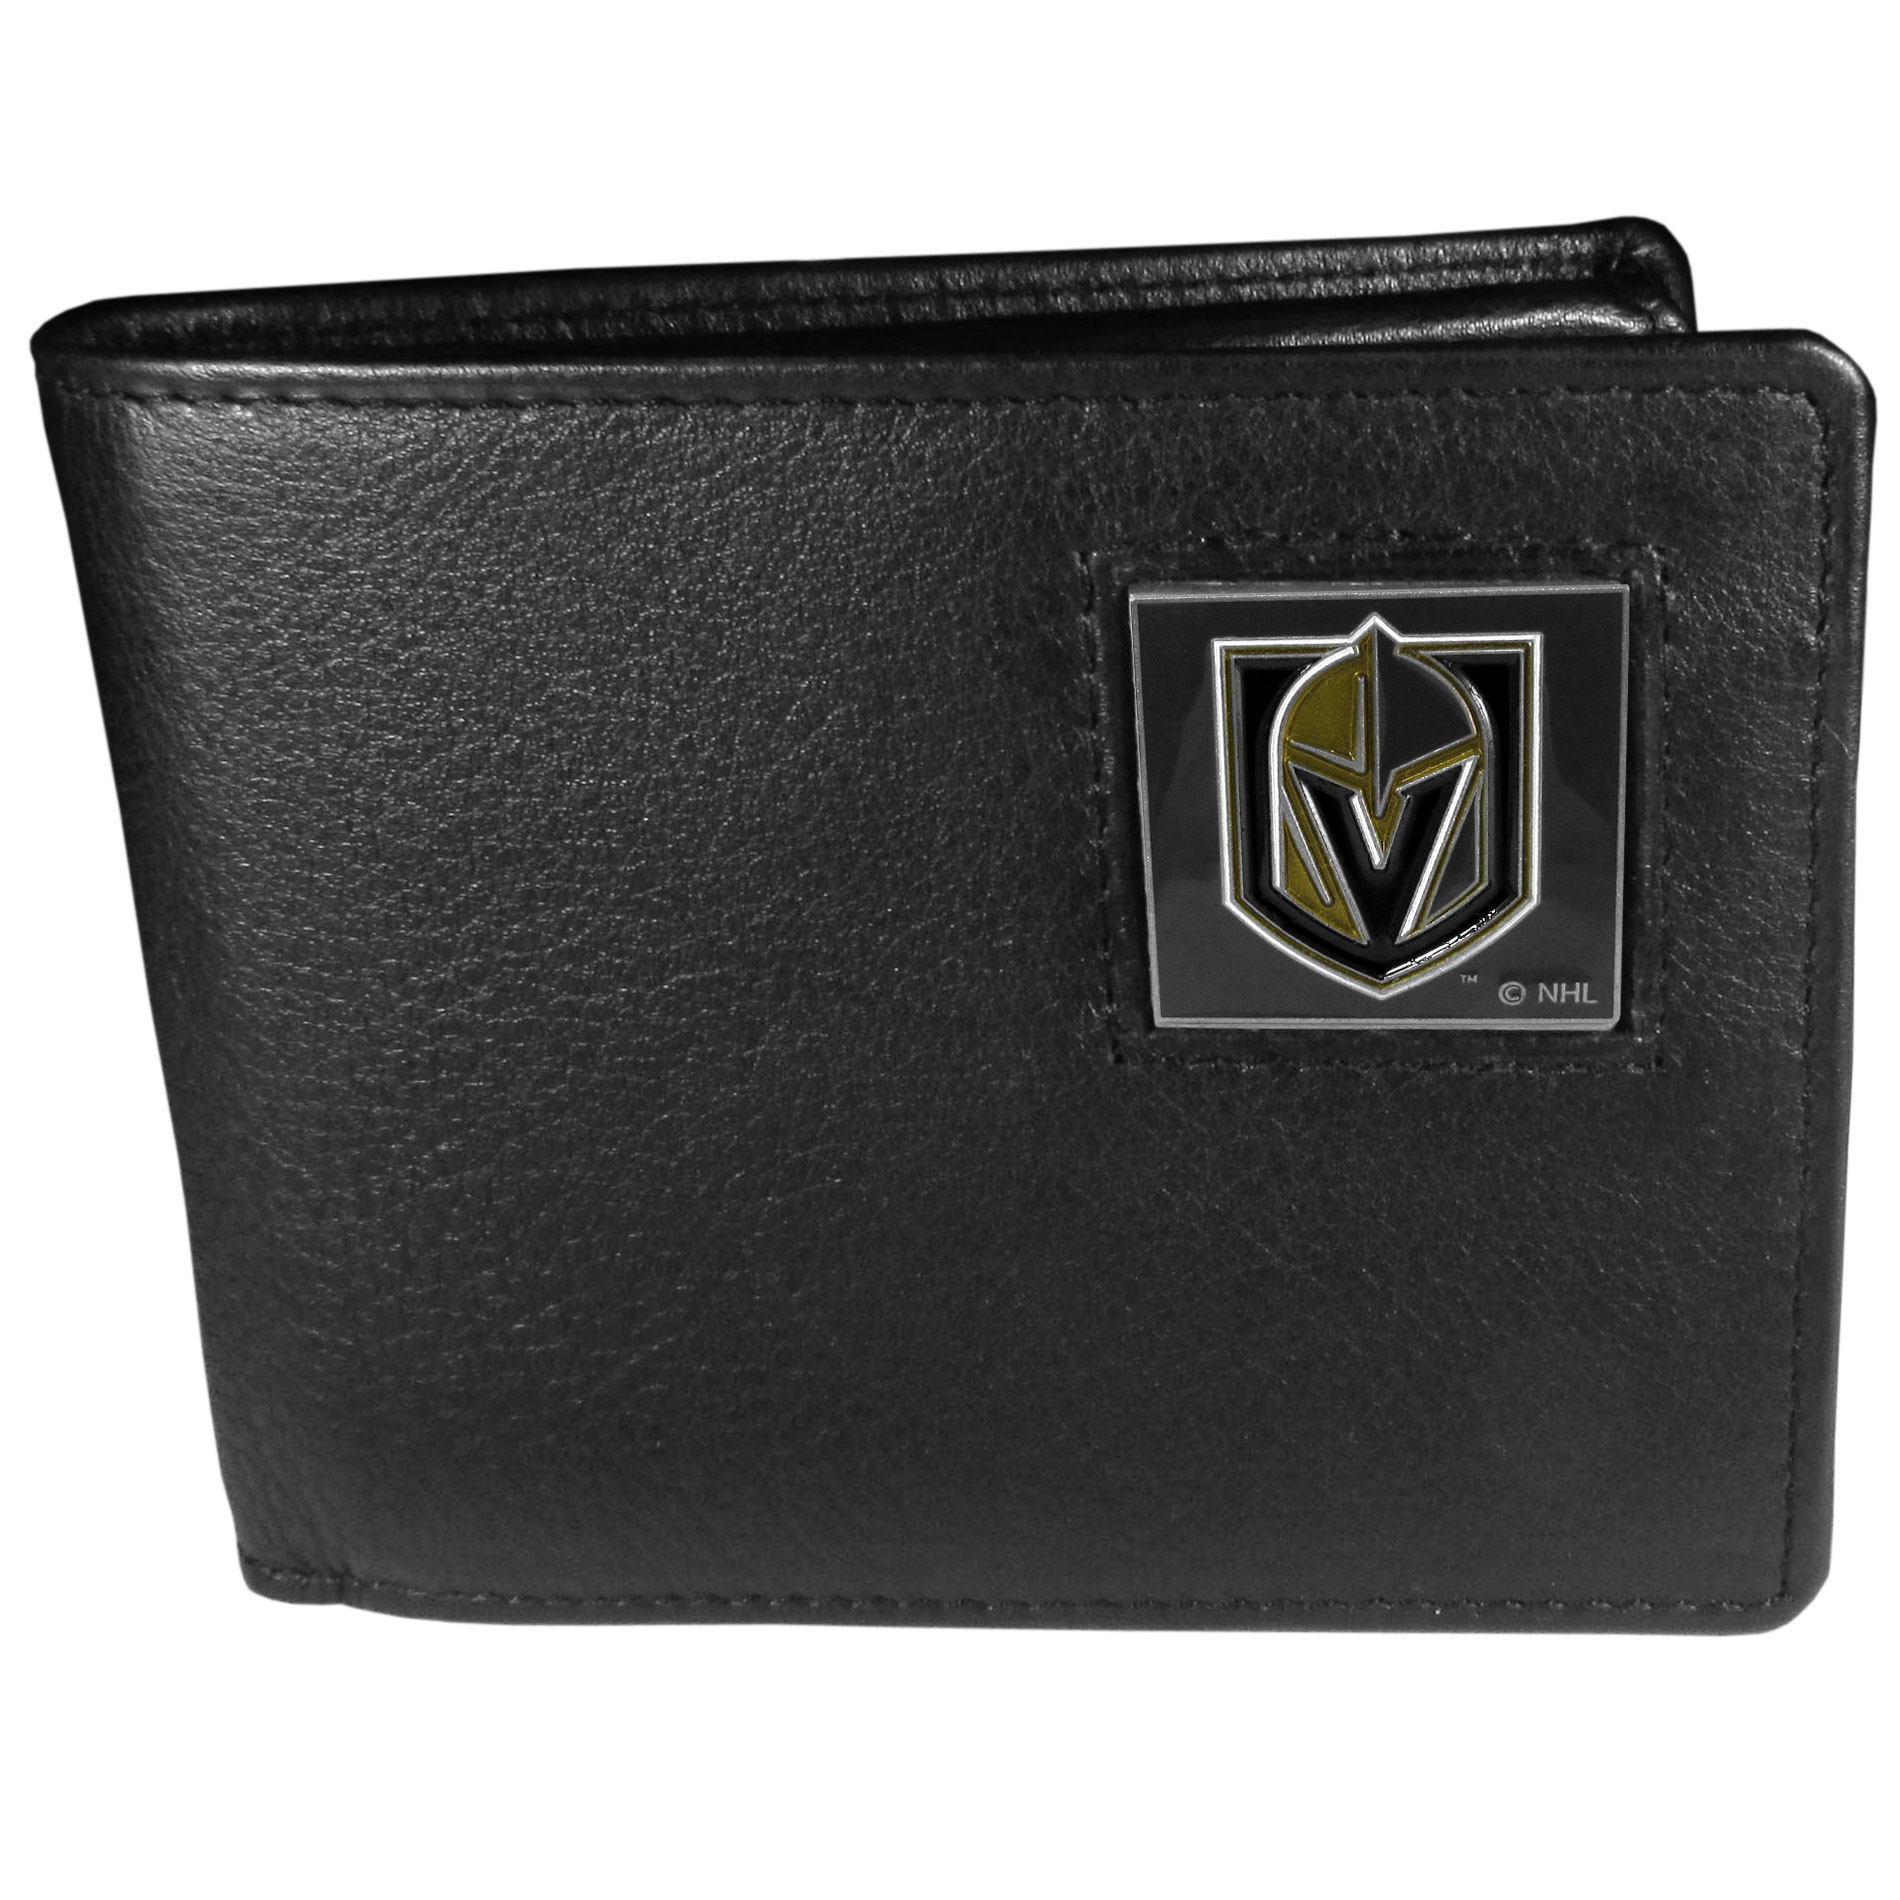 Las Vegas Golden Knights® Leather Bi-fold Wallet - Our officially licensed fine grain leather bi-fold wallet features numerous card slots, large billfold pocket and flip up window ID slot. This quality wallet has an enameled Las Vegas Golden Knights® emblem on the front of the wallet.